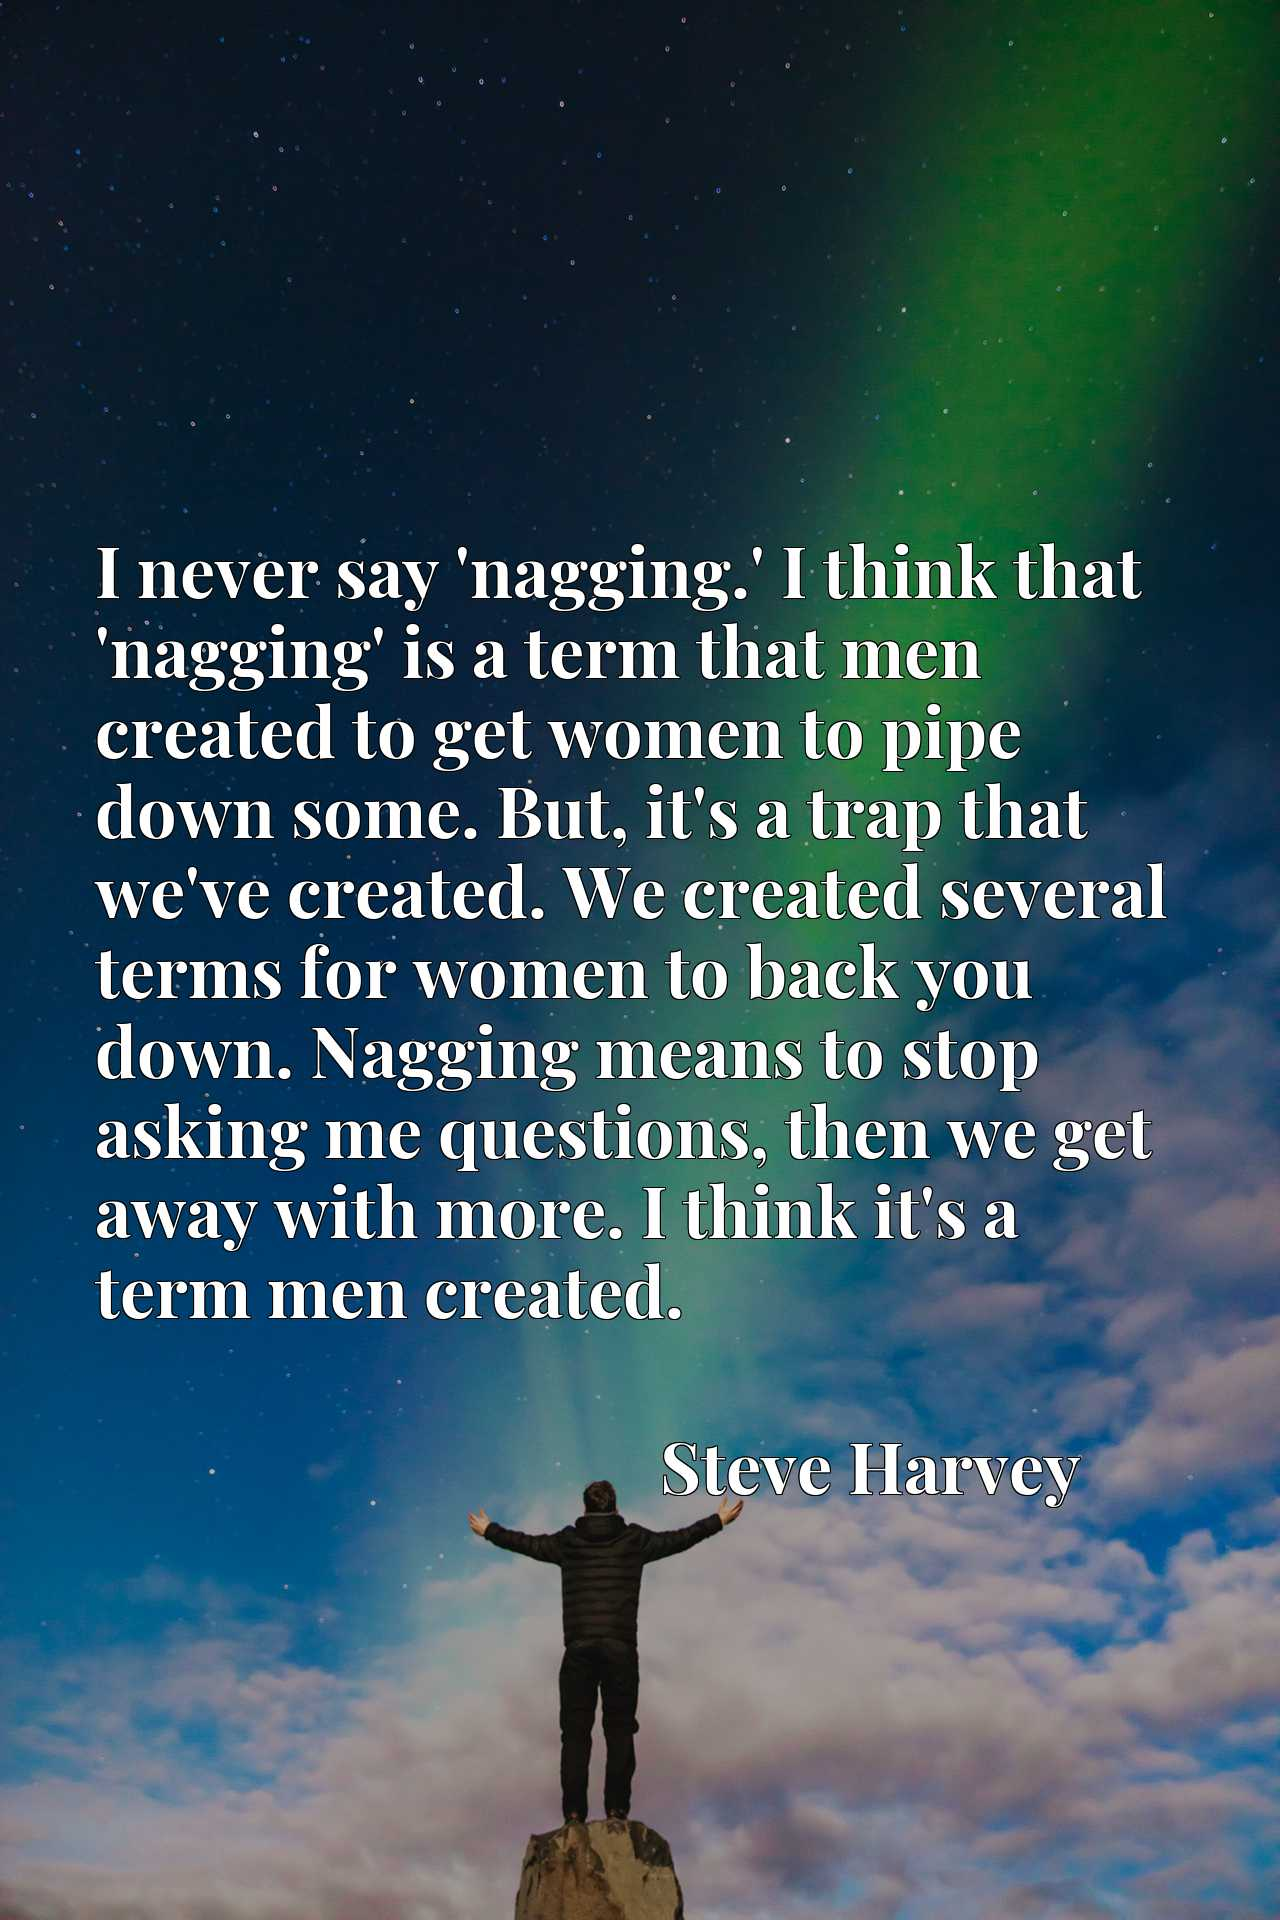 I never say 'nagging.' I think that 'nagging' is a term that men created to get women to pipe down some. But, it's a trap that we've created. We created several terms for women to back you down. Nagging means to stop asking me questions, then we get away with more. I think it's a term men created.